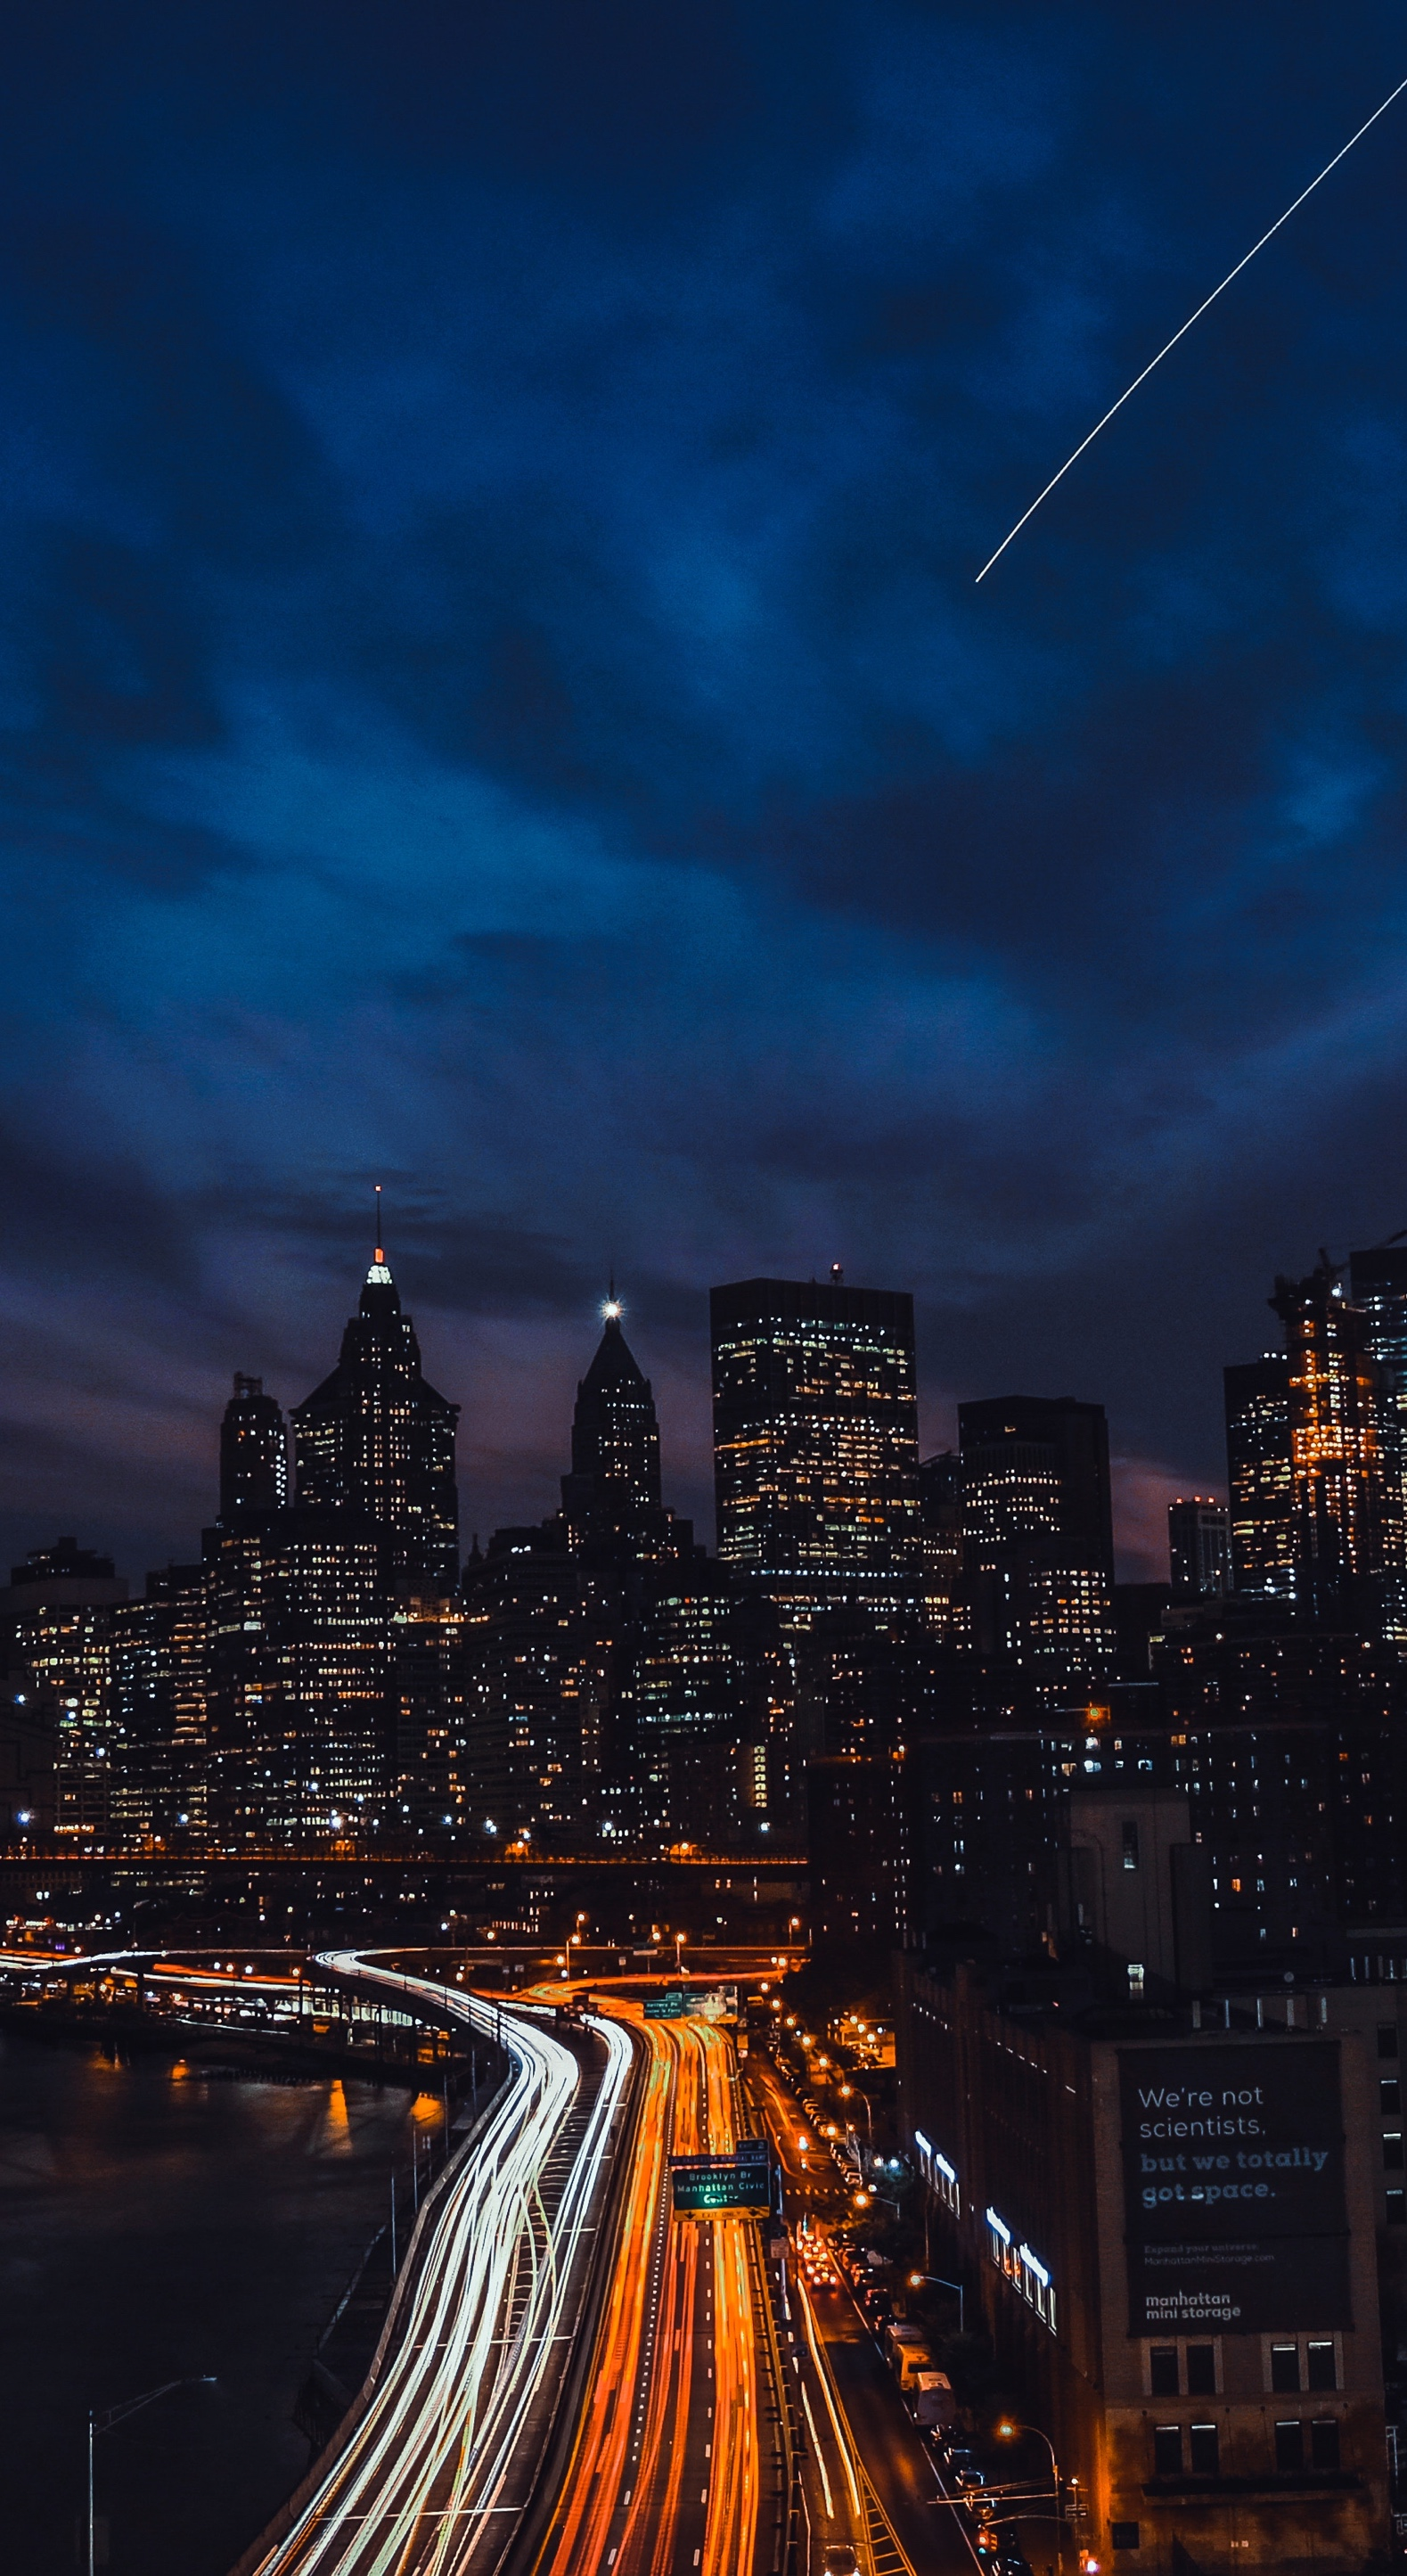 Nyc At Night For Mac, Ipad, Iphone, And Apple Watch - New York City Night - HD Wallpaper